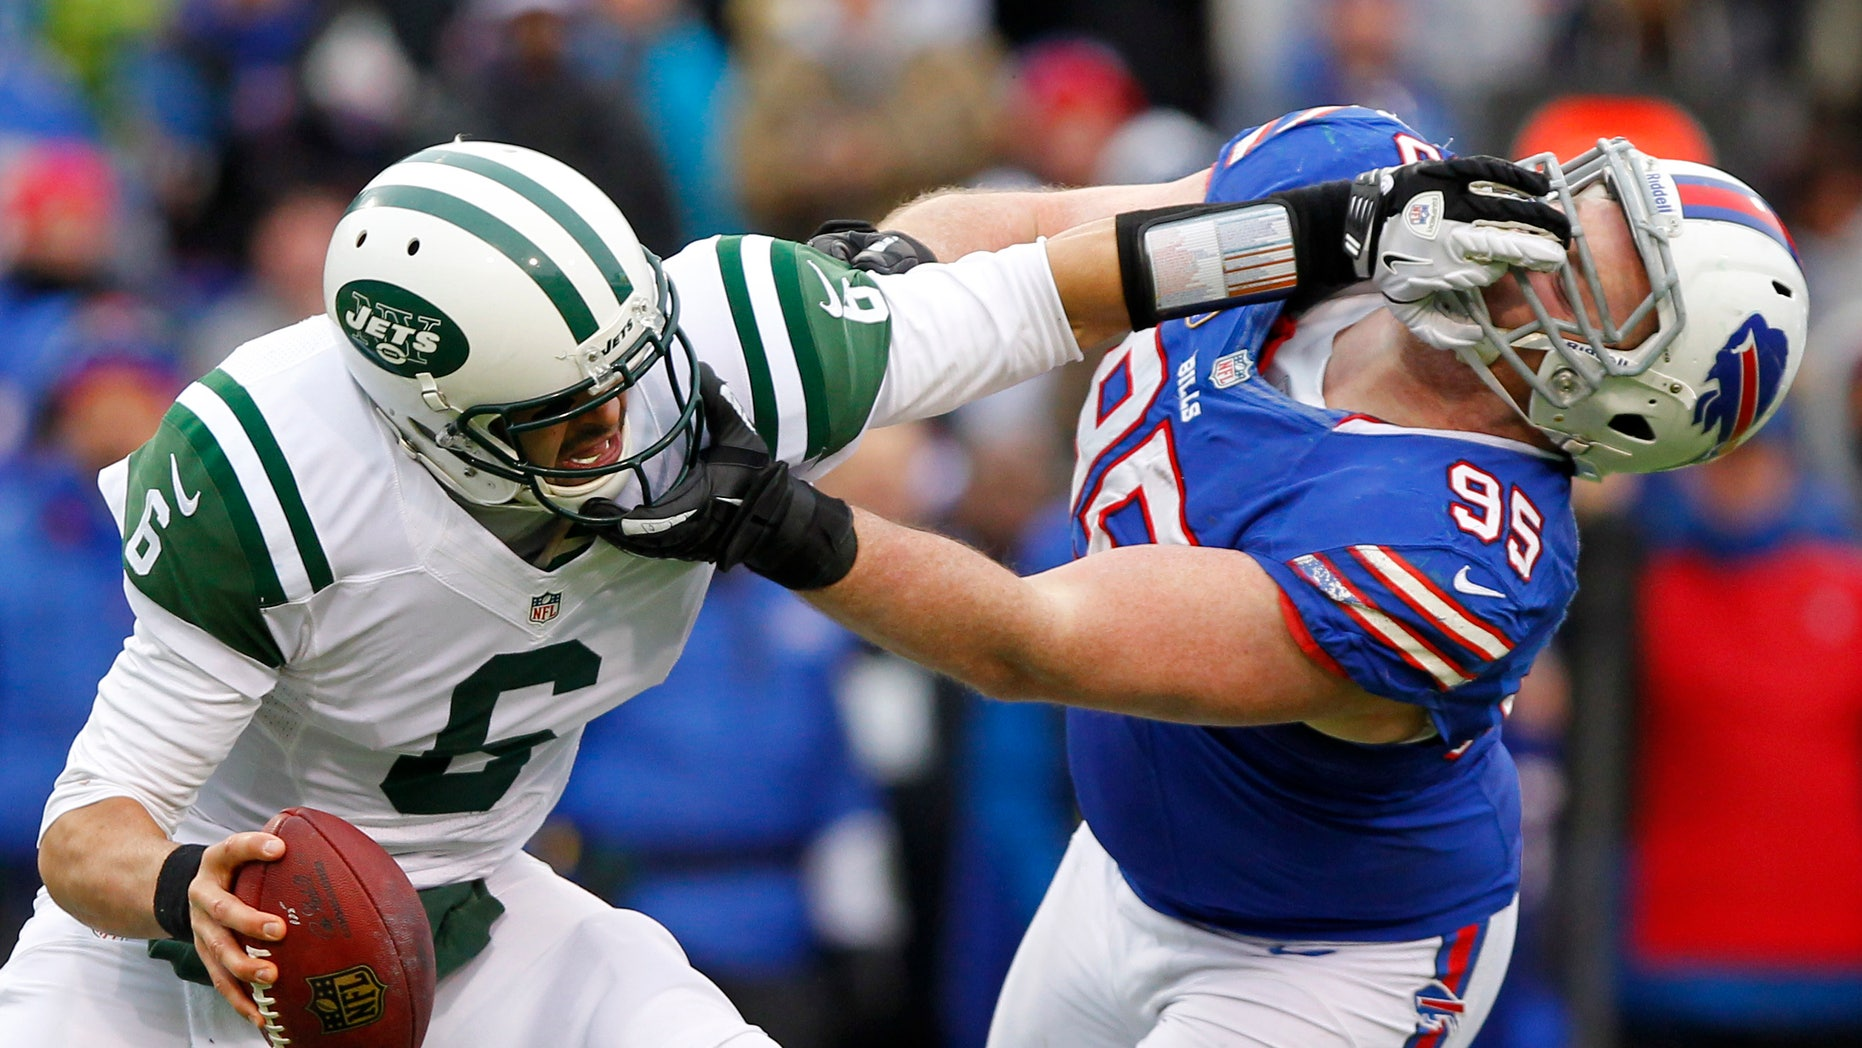 New York Jets quarterback Mark Sanchez (6) holds off Buffalo Bills defensive tackle Kyle Williams (95) during the second half of an NFL football game on Sunday, Dec. 30, 2012, in Orchard Park, N.Y. Buffalo won 28-9. (AP Photo/Bill Wippert)